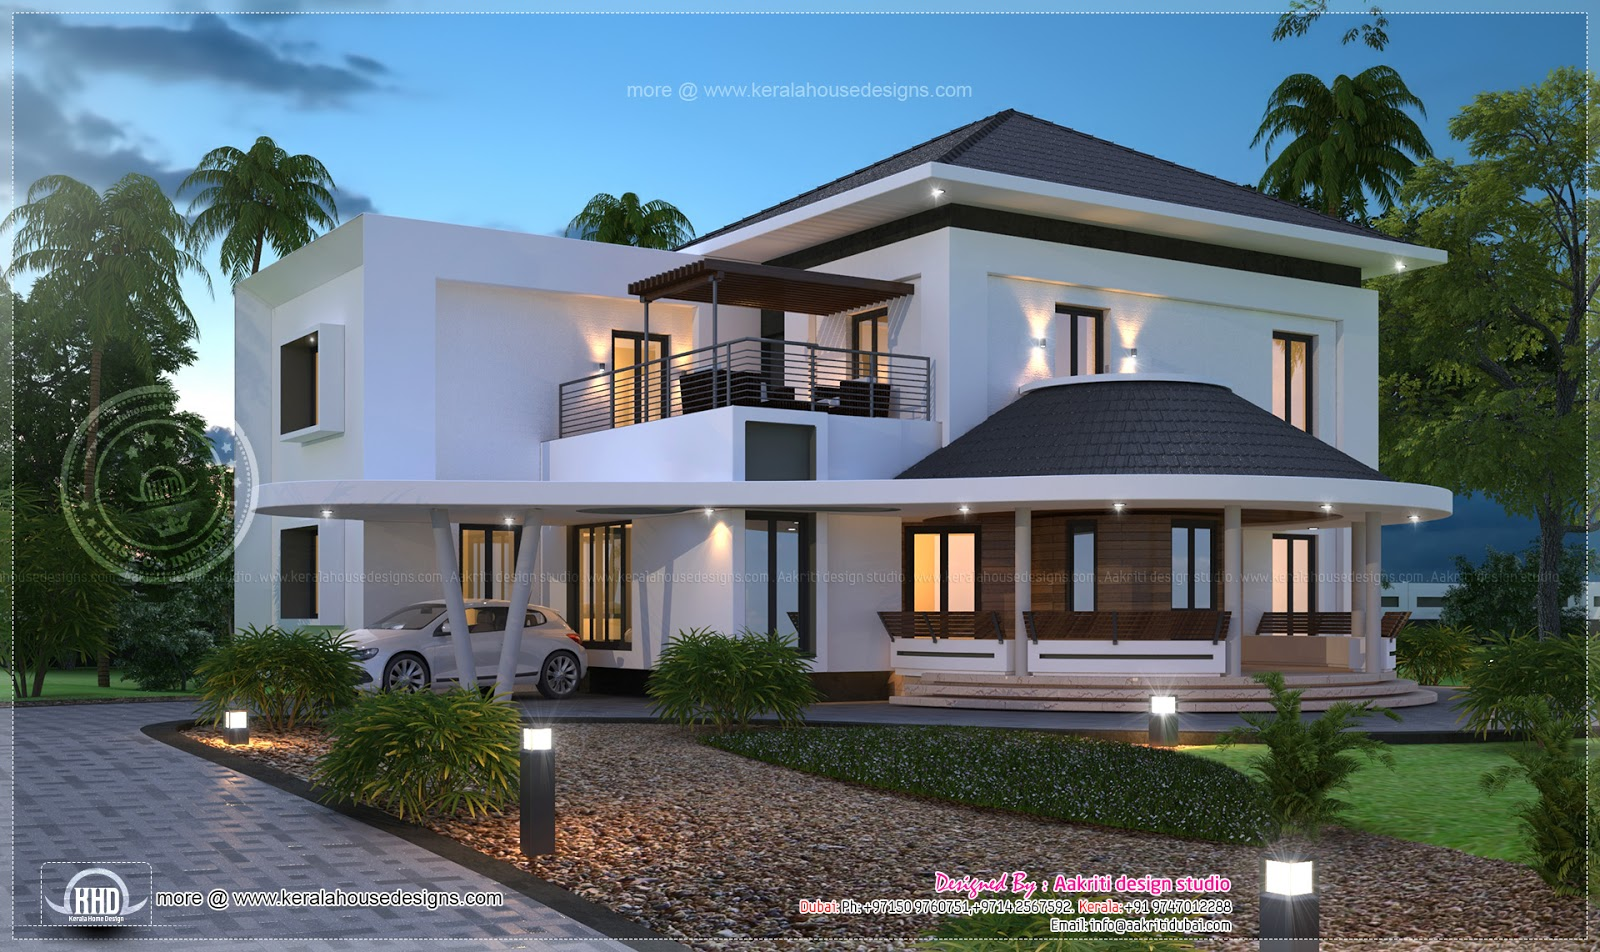 Beautiful 3200 sq ft modern villa exterior home kerala plans Indian modern home design images